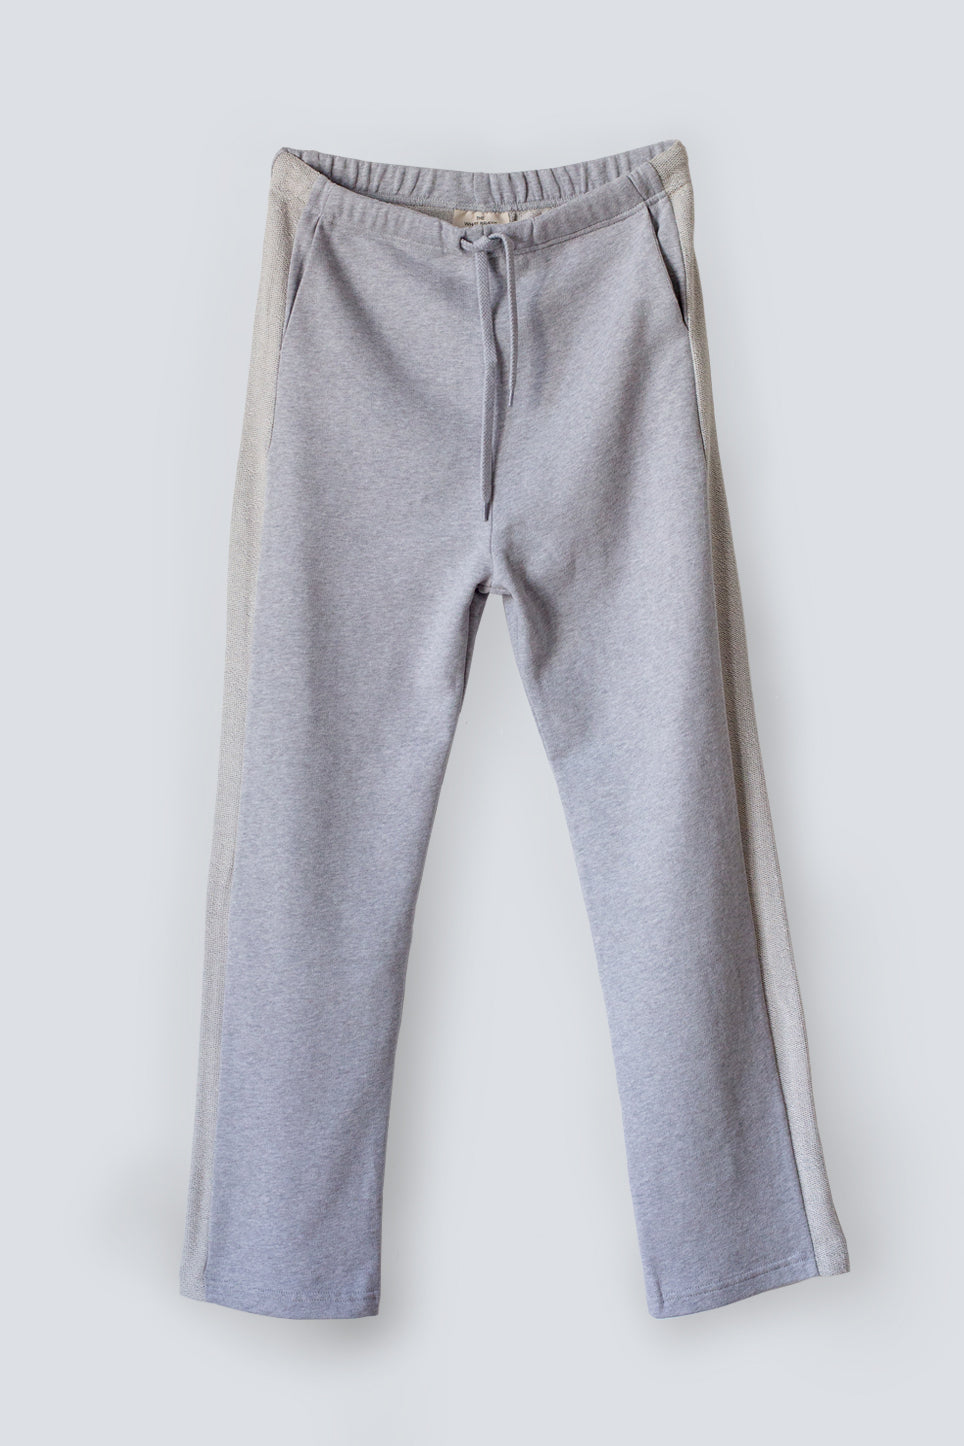 Straight leg soft terry grey trackpants for women made from an organic cotton by The White Briefs